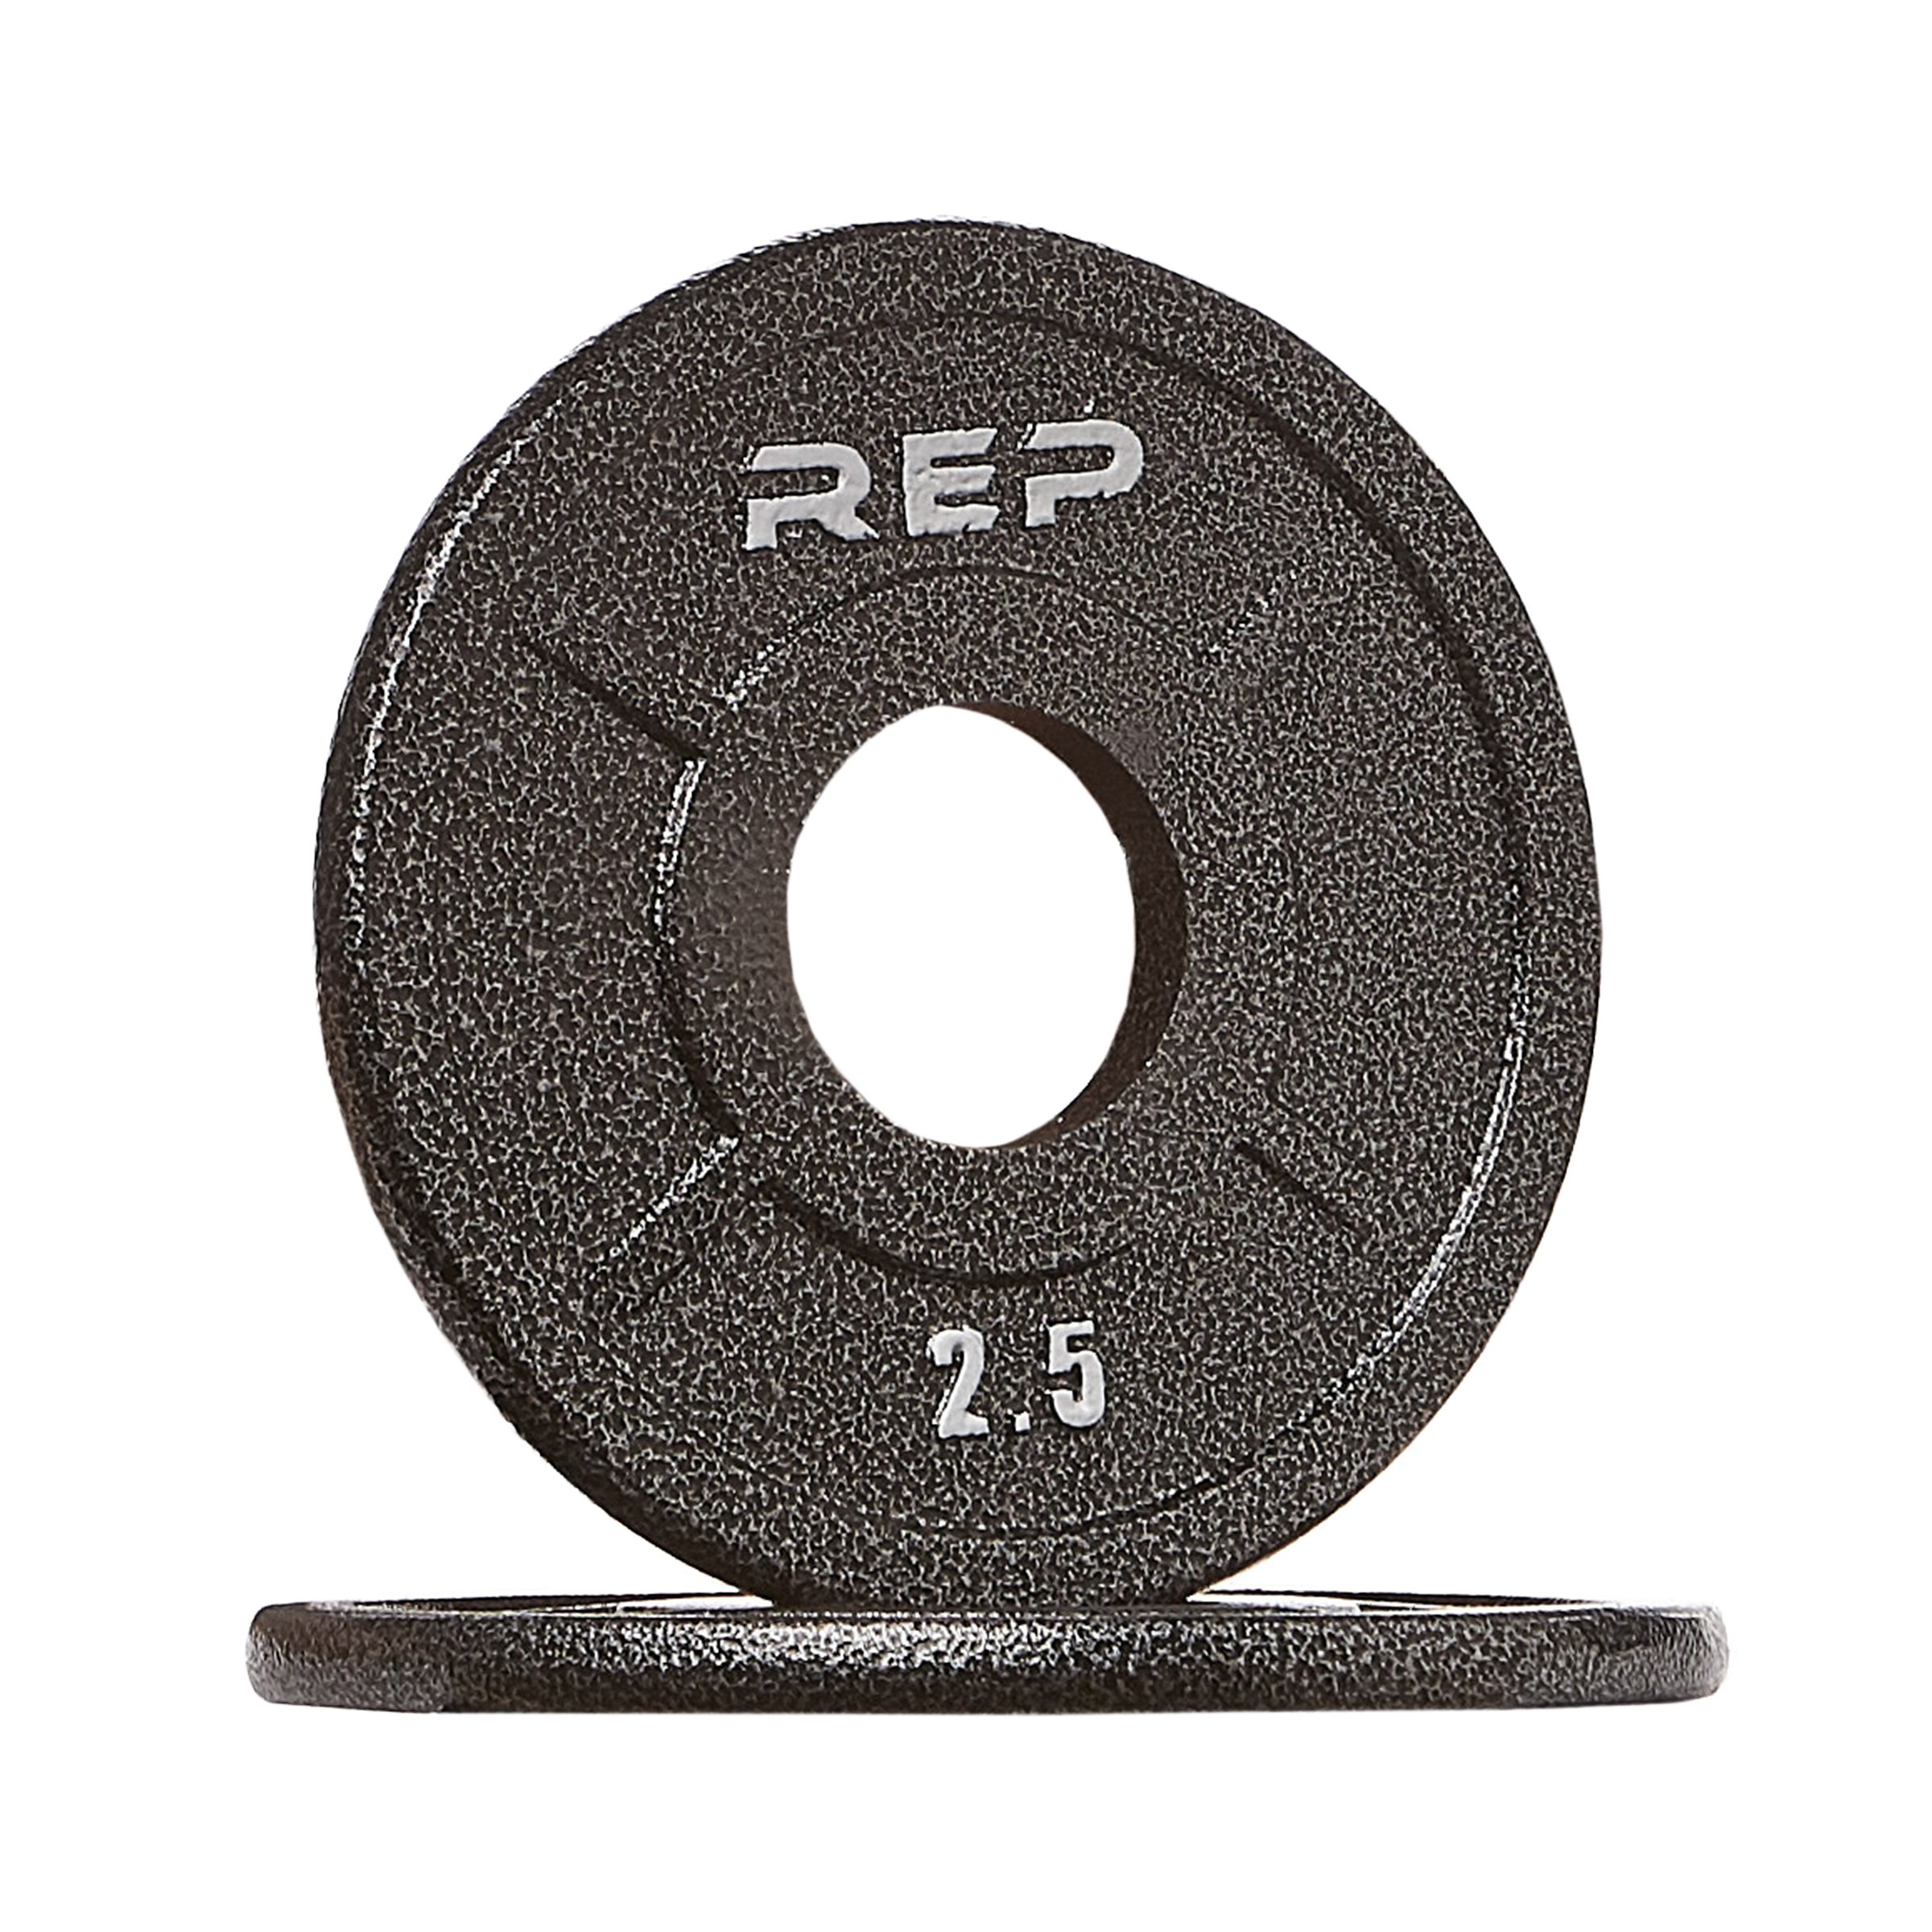 Rep Fitness Rep Black Equalizer Iron Olympic Plates, 2.5 lb Pair